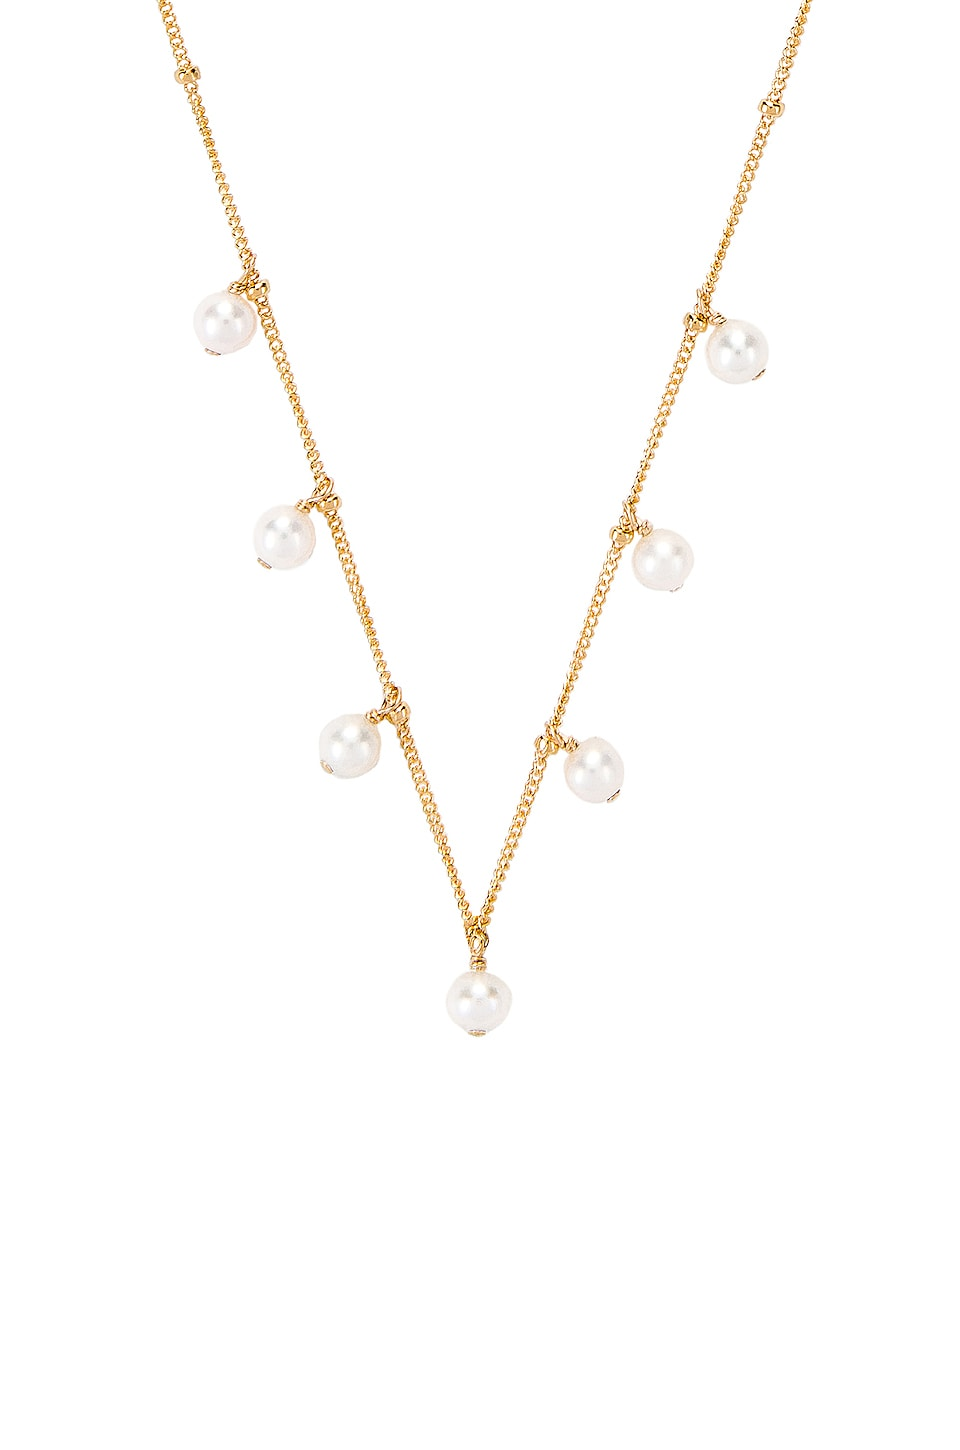 Paradigm Pearl Shaker Necklace in Gold & Pearl